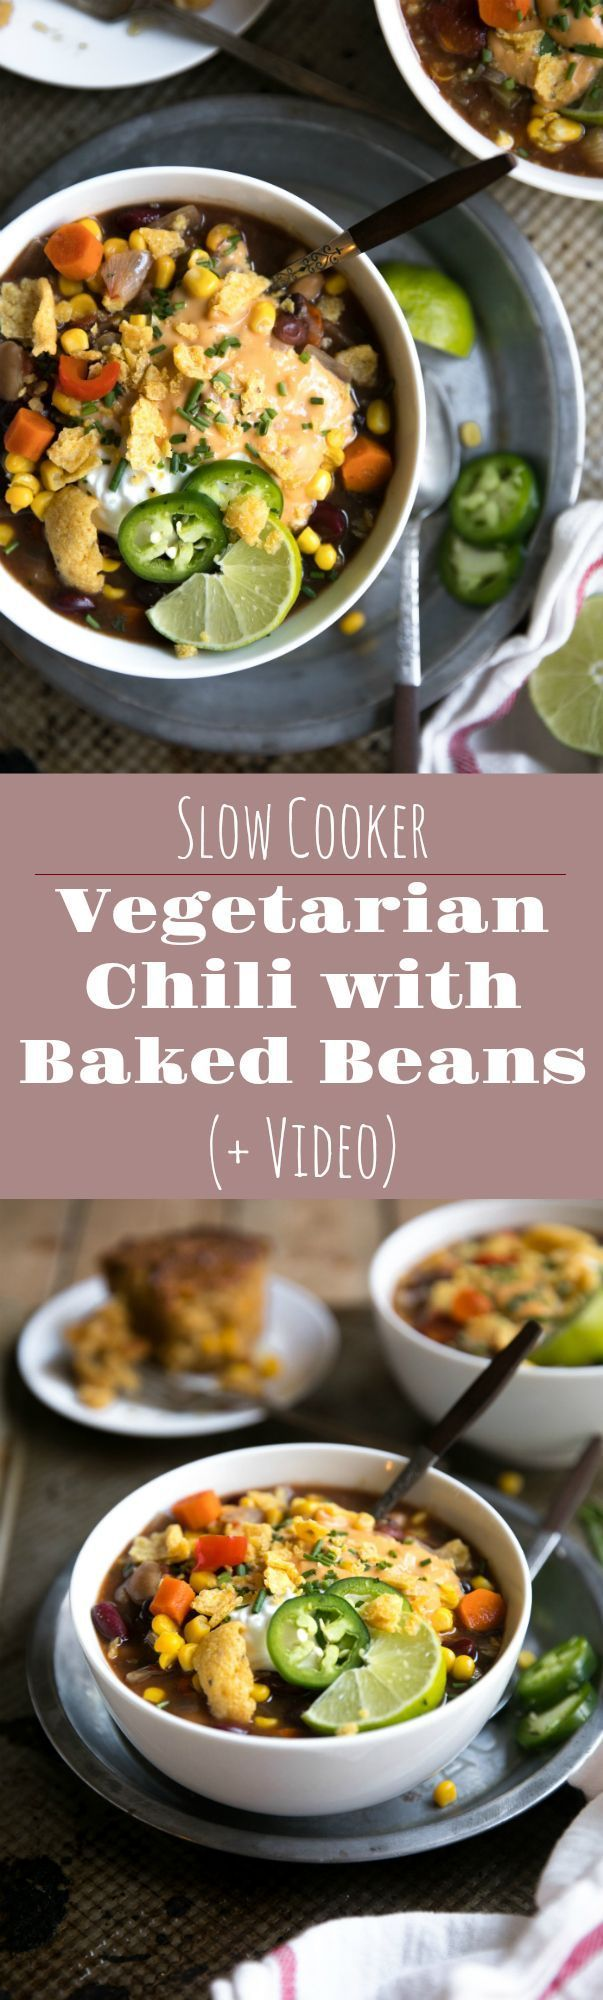 Slow Cooker Vegetarian Chili with Baked Beans Slow Cooker Vegetarian Chili with Baked Beans -